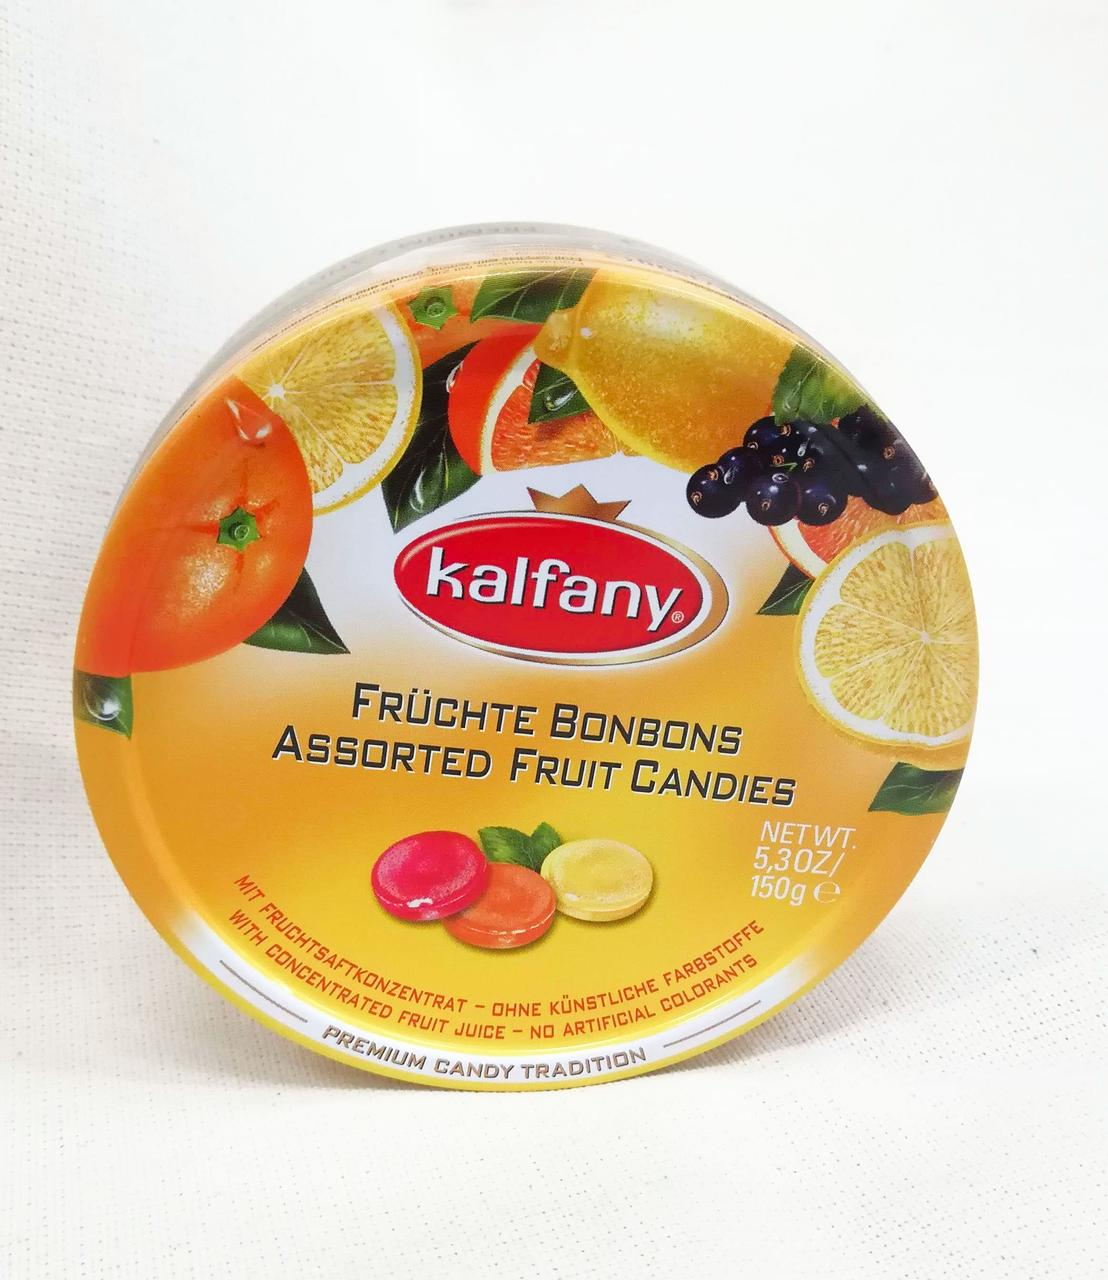 Kalfany Assorted Fruit Candies